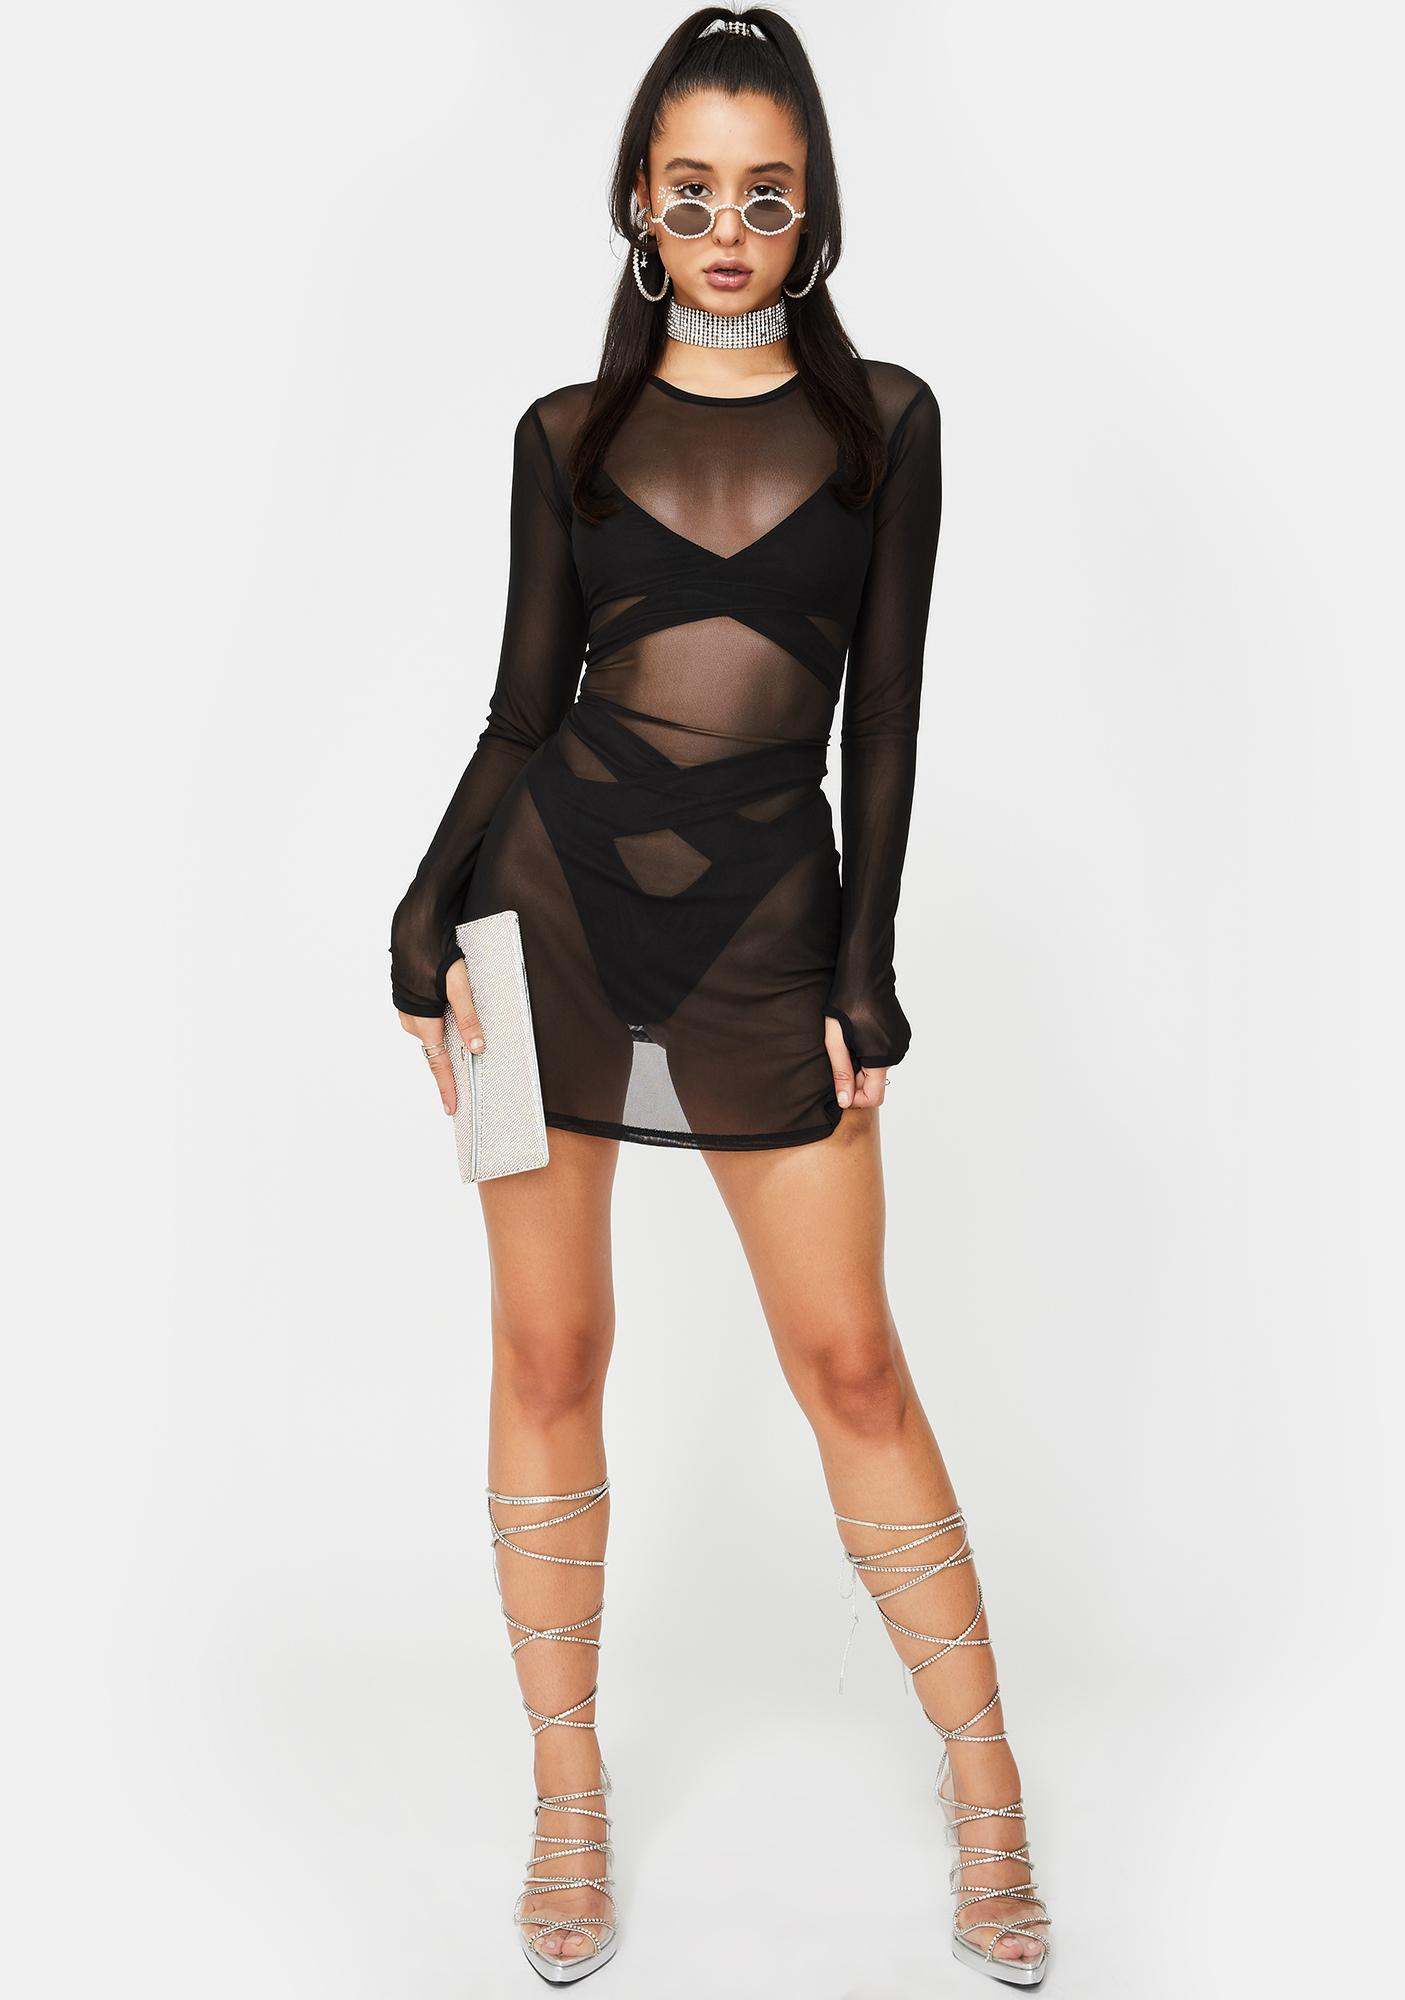 Poster Grl Envy Me Sheer Lingerie Set